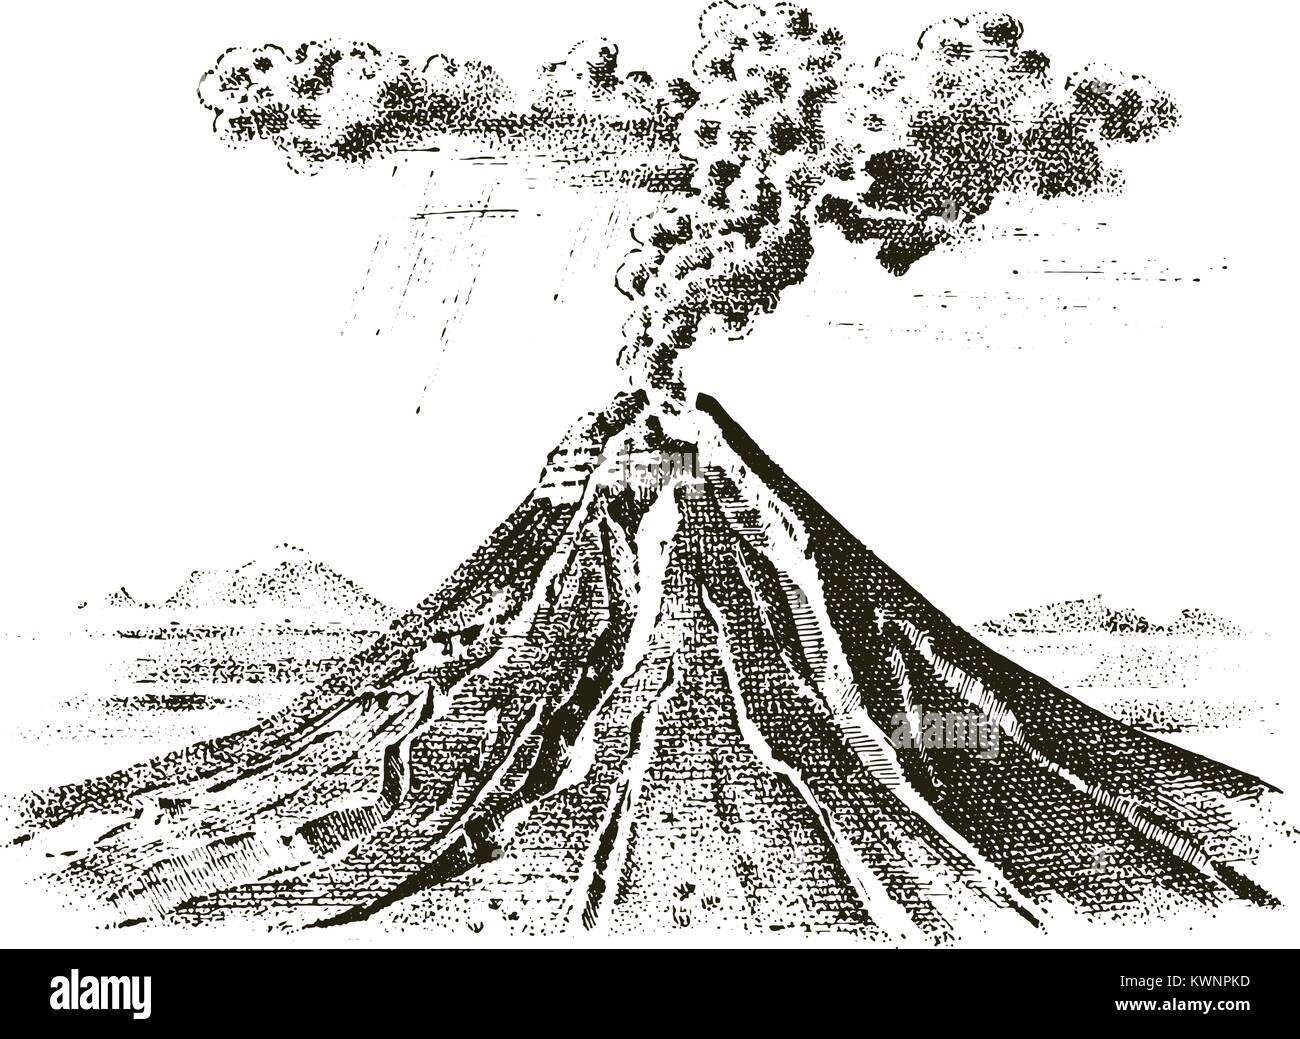 Volcano Eruption Cut Out Stock Images Amp Pictures